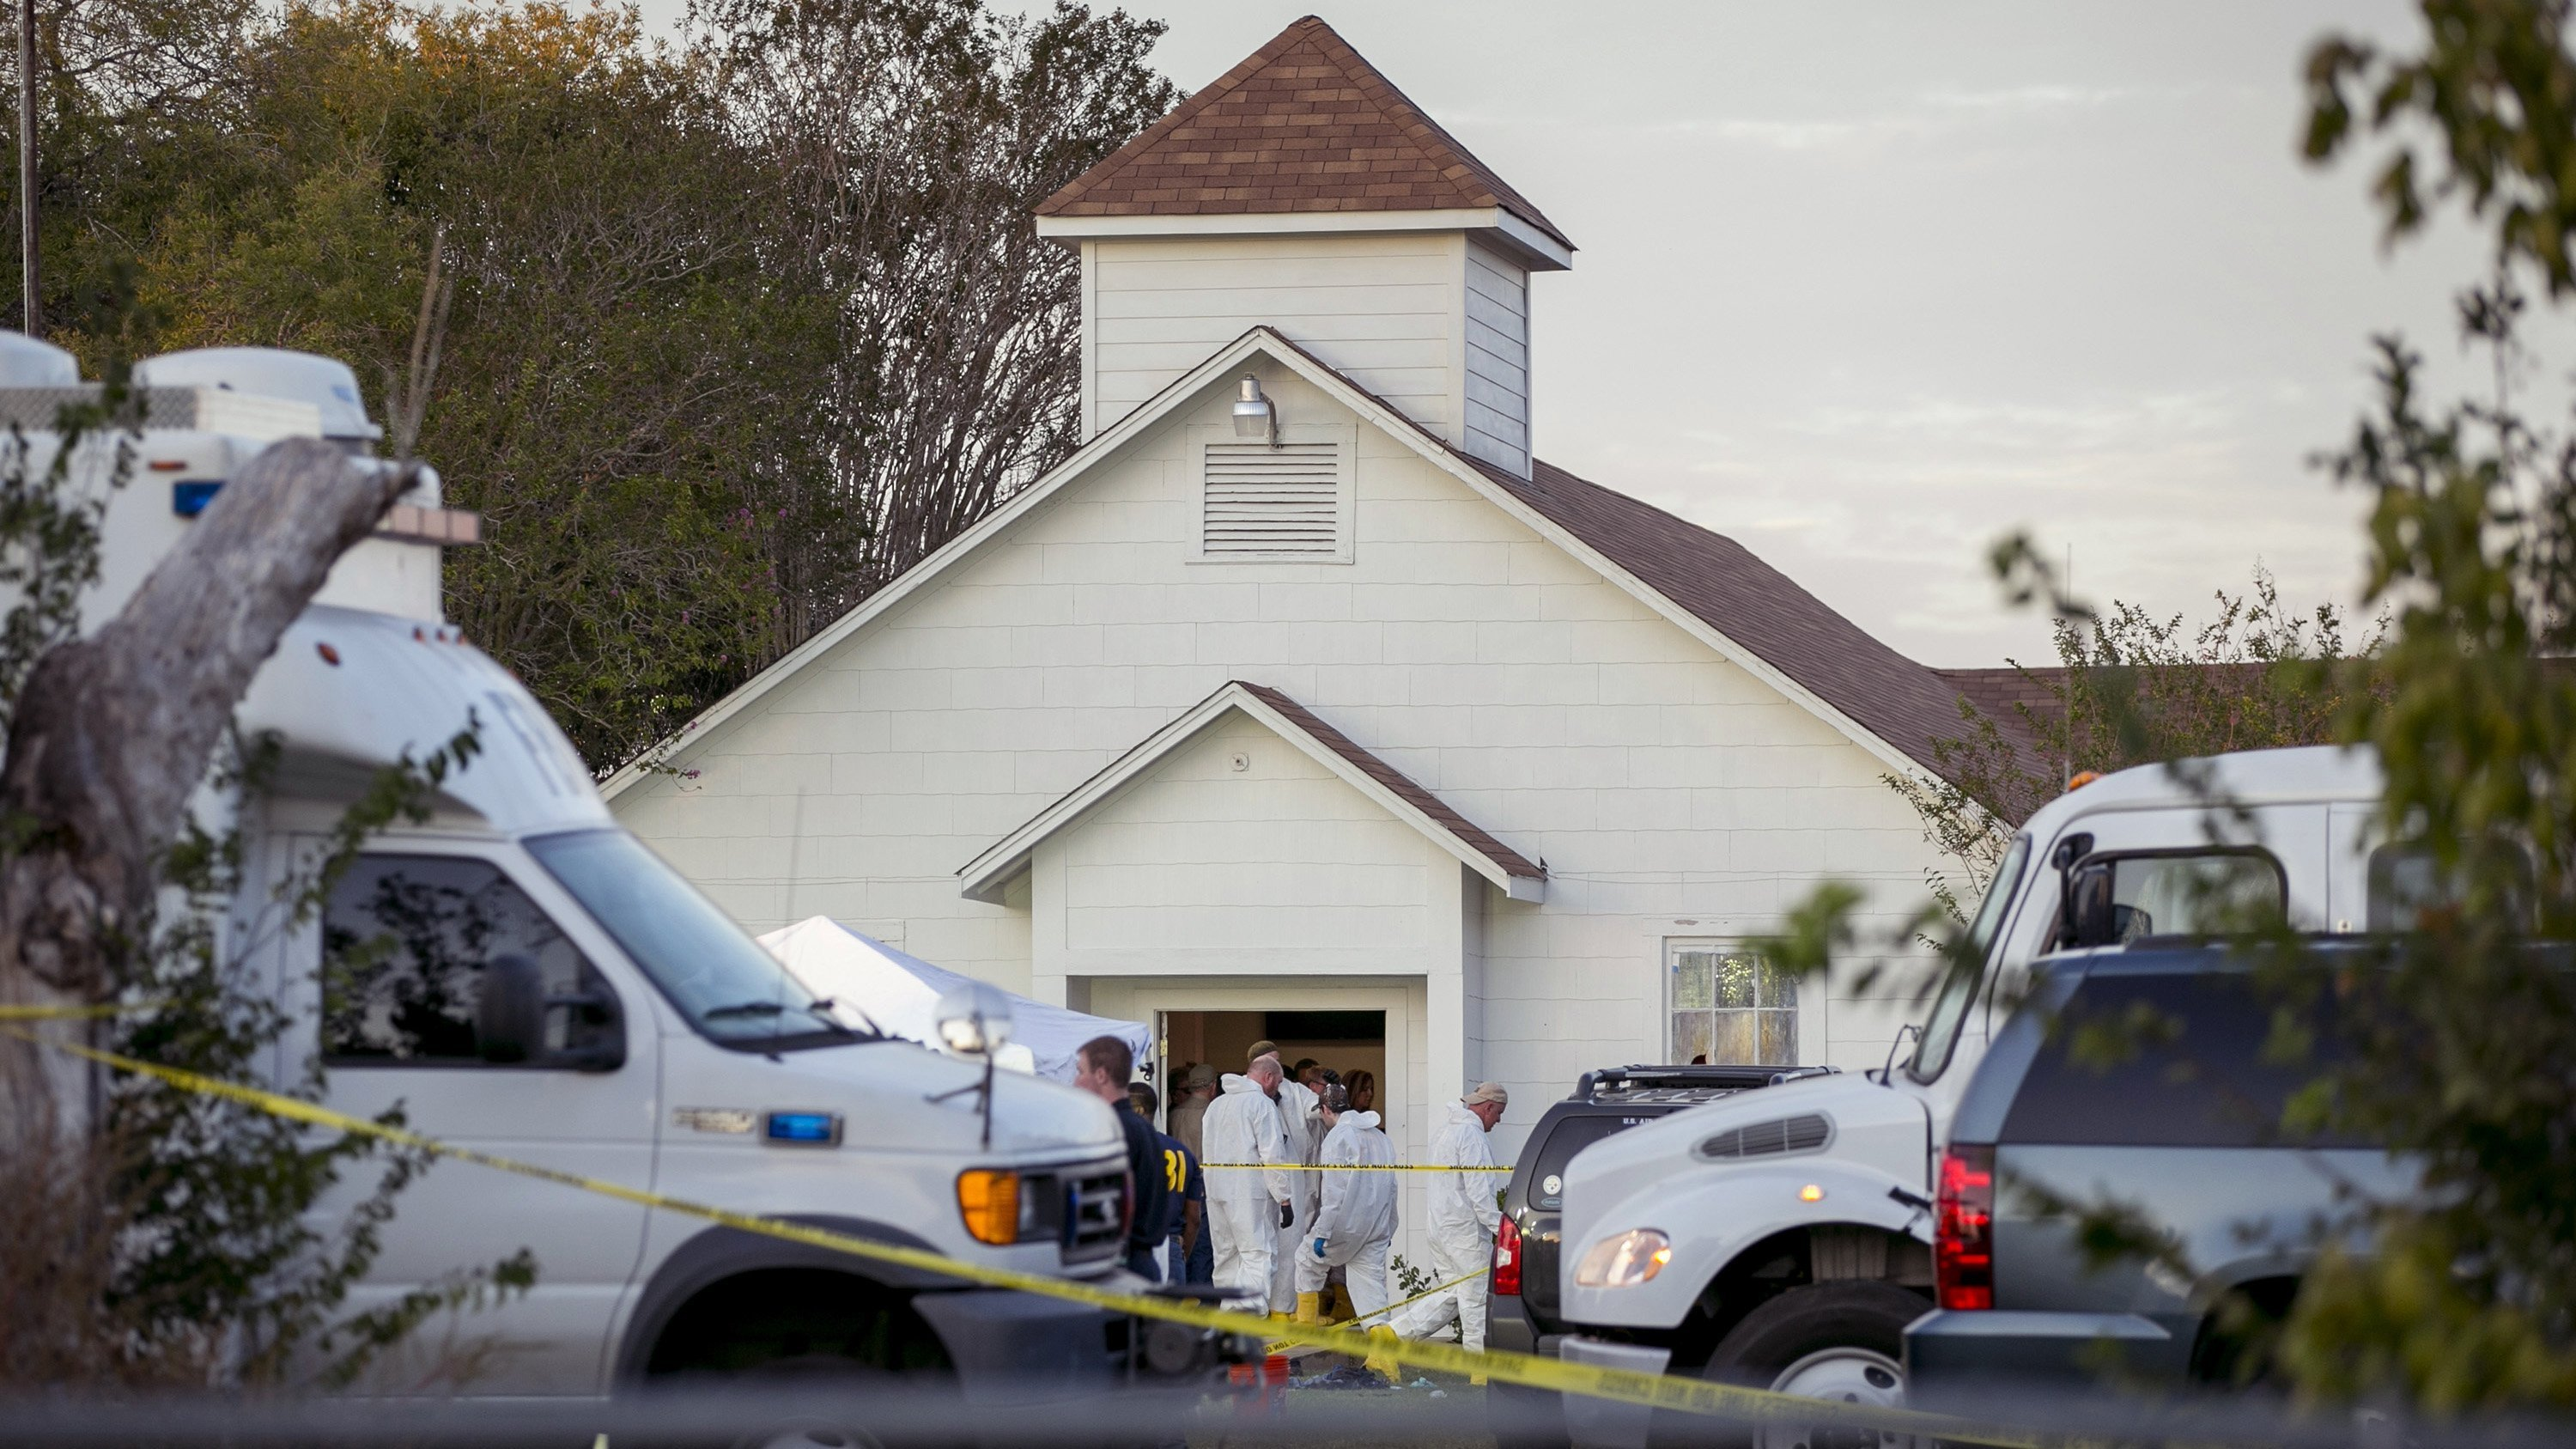 **This image is for use with this specific article only**  It was a gorgeous day in Sutherland Springs, and worshipers at First Baptist Church were singing the praises of Christ. Suddenly, the joyous prayers were drowned out by screams of terror.